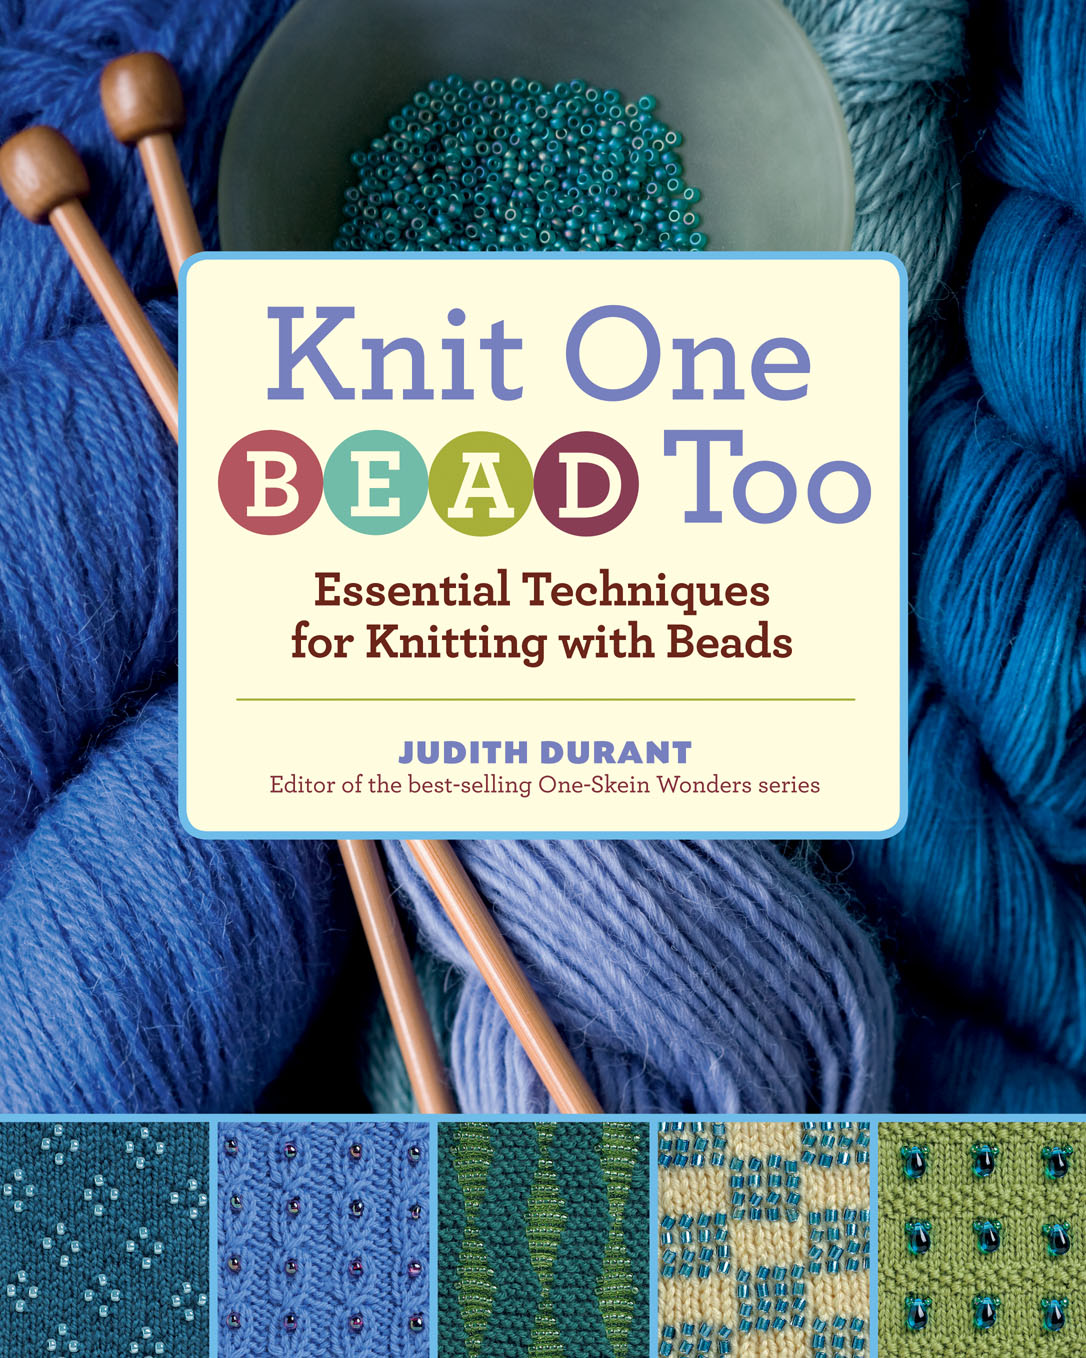 Knit One, Bead Too Essential Techniques for Knitting with Beads - Judith Durant